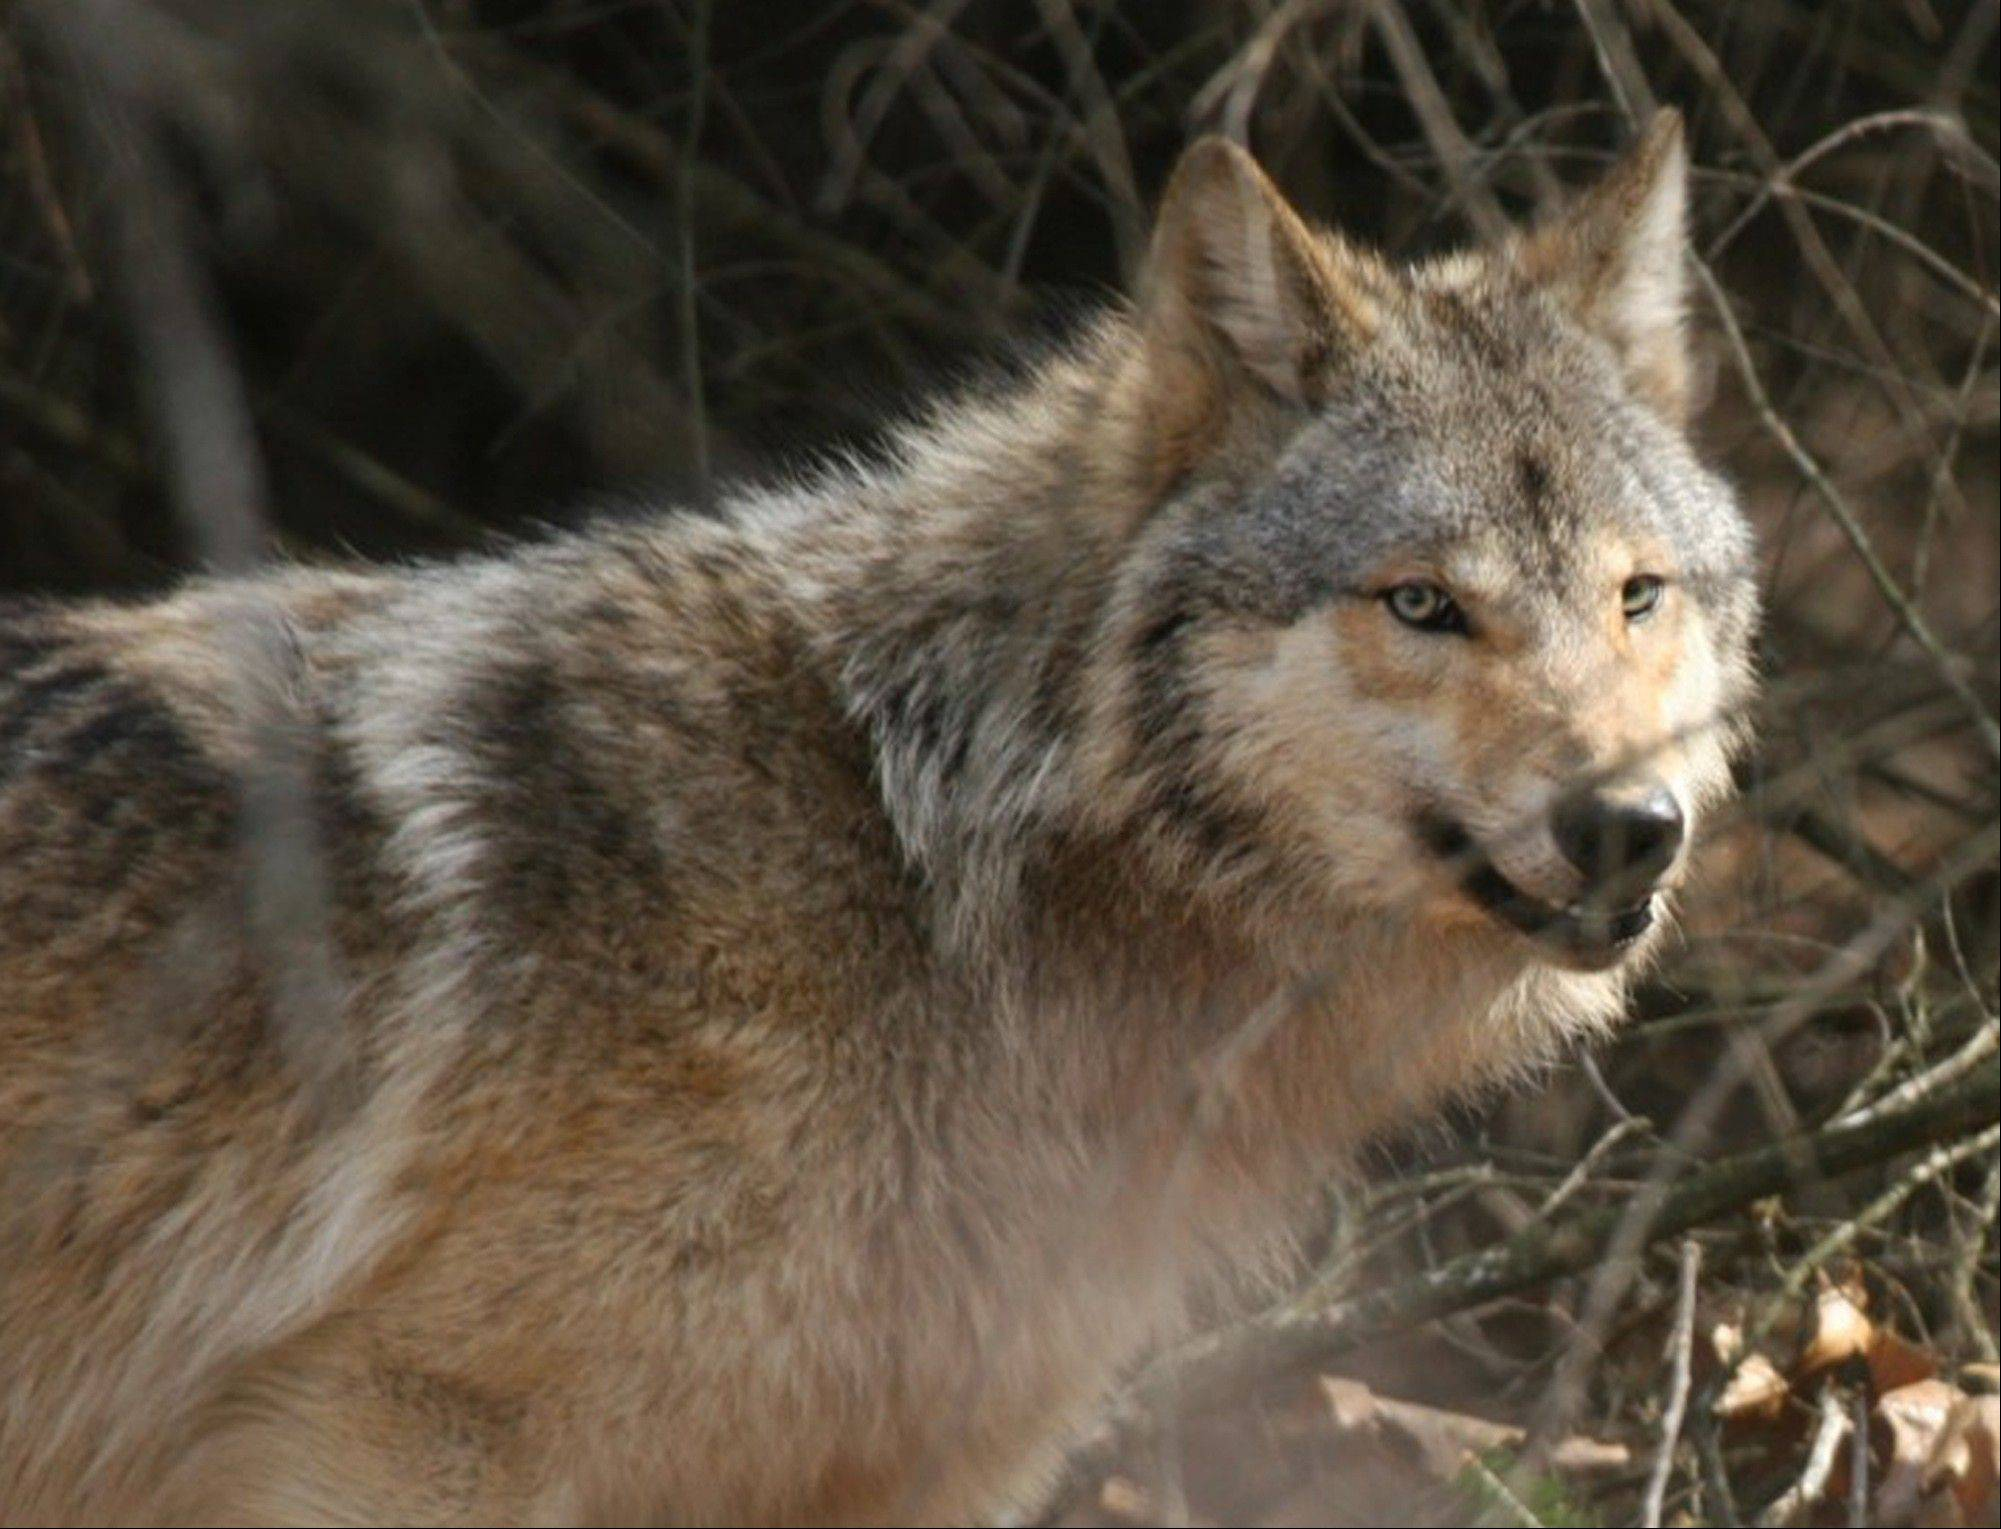 After months of contentious debate, Wisconsin�s first organized wolf hunt has begun and will run through February.